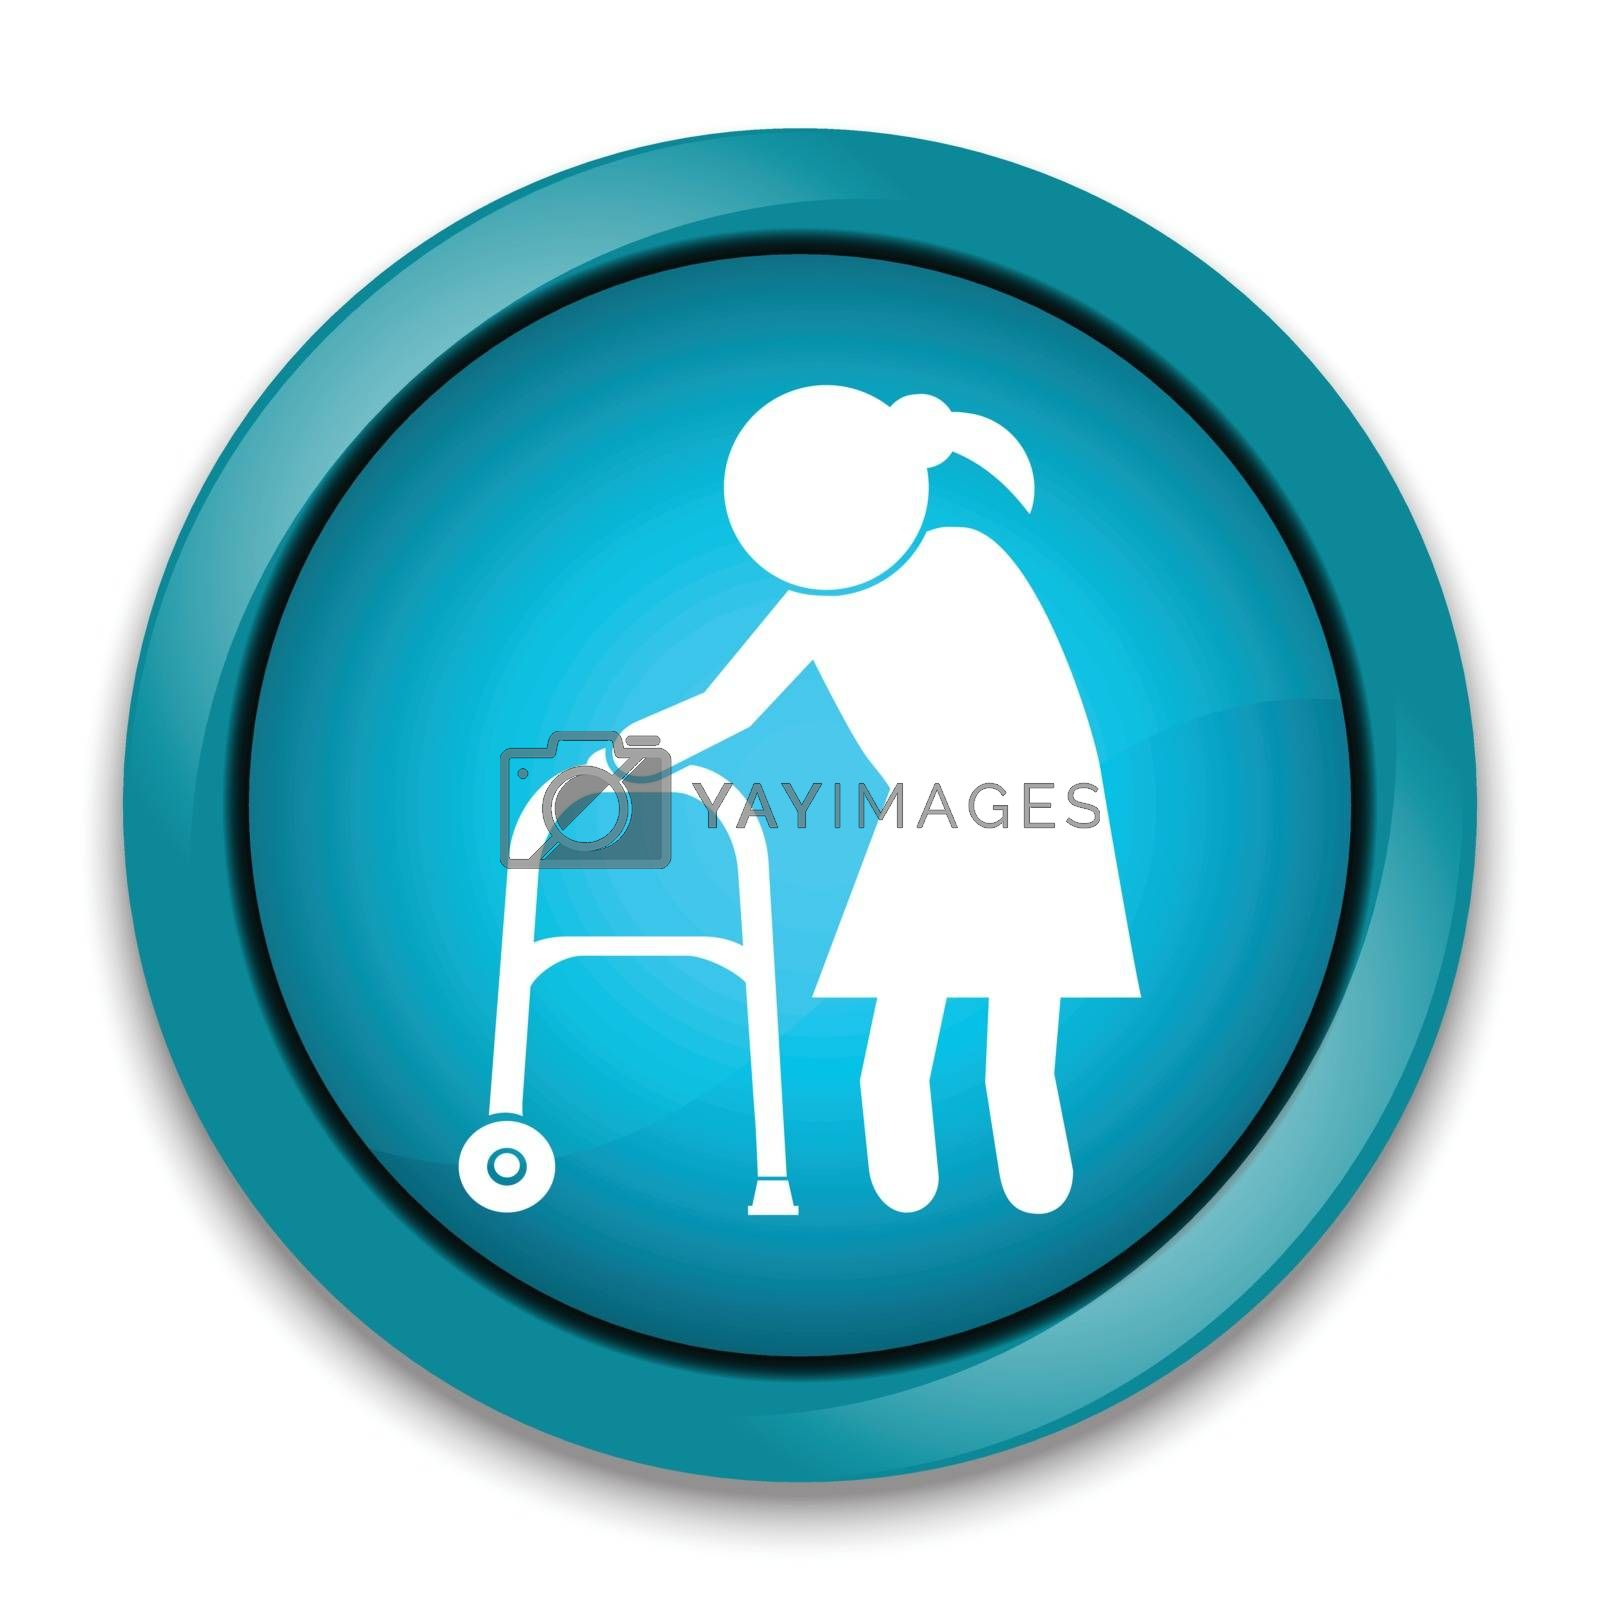 Elderly woman icon. old people icon, button vector illustration